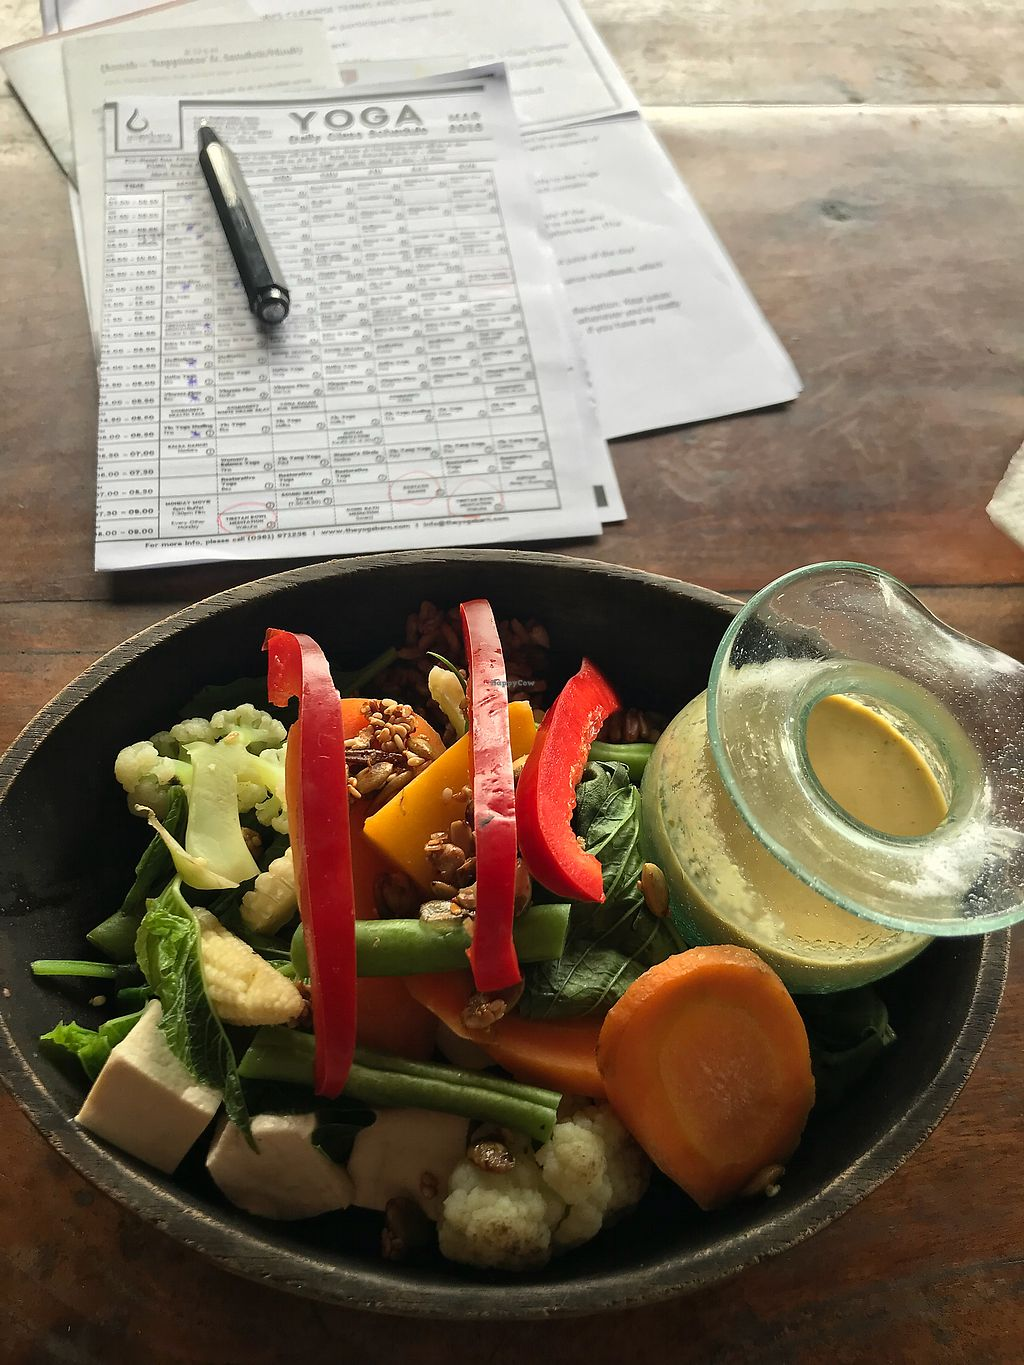 "Photo of The Garden Kafe at The Yoga Barn  by <a href=""/members/profile/LolaNachtigall"">LolaNachtigall</a> <br/>Macro Bowl - simply the best <br/> March 3, 2018  - <a href='/contact/abuse/image/39987/366102'>Report</a>"